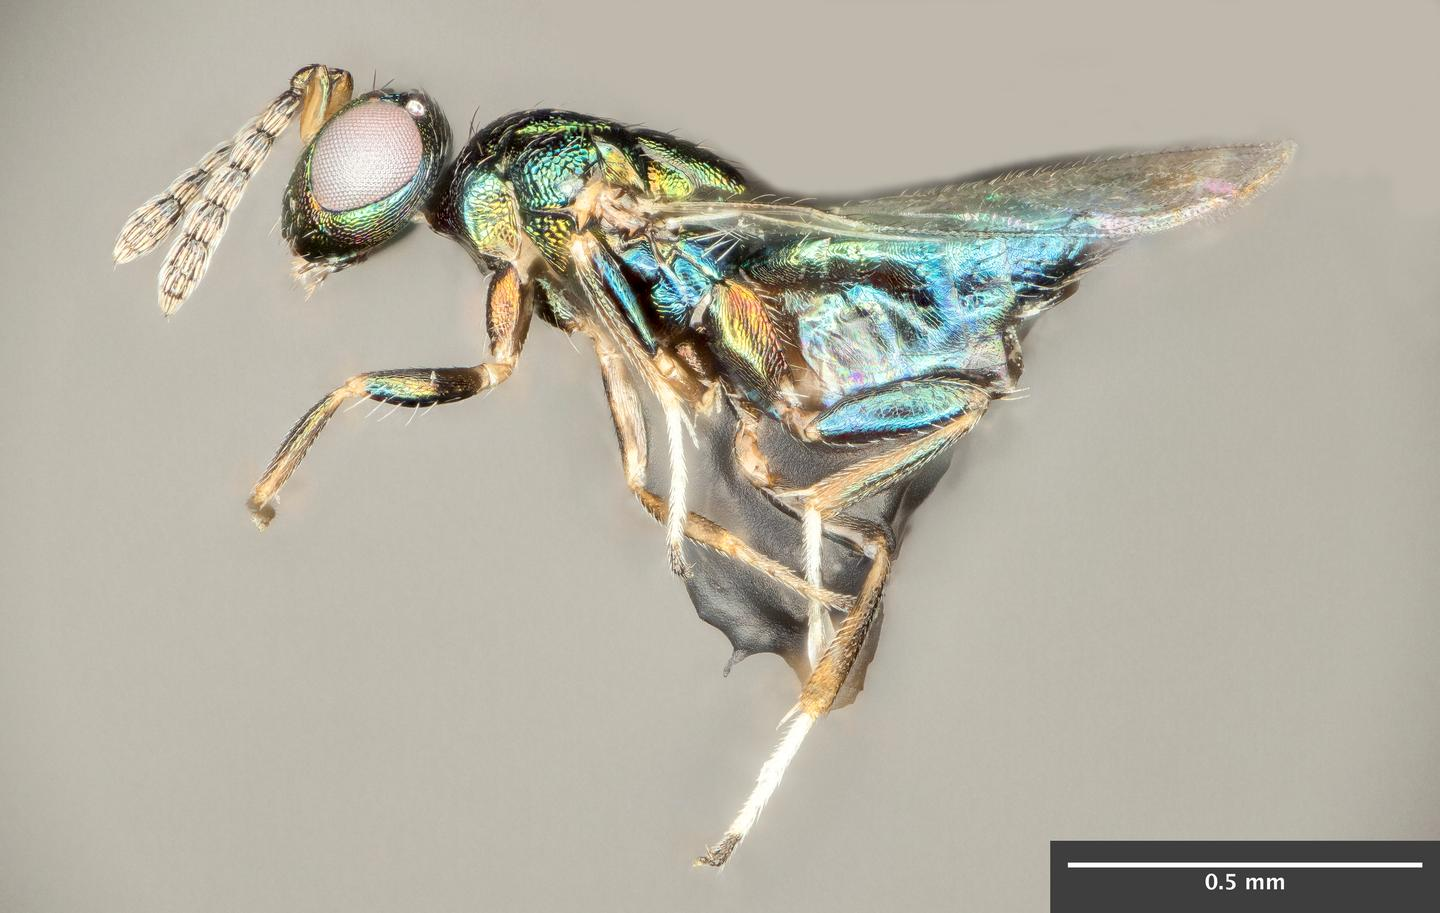 The crypt-keeper wasp, Euderus set